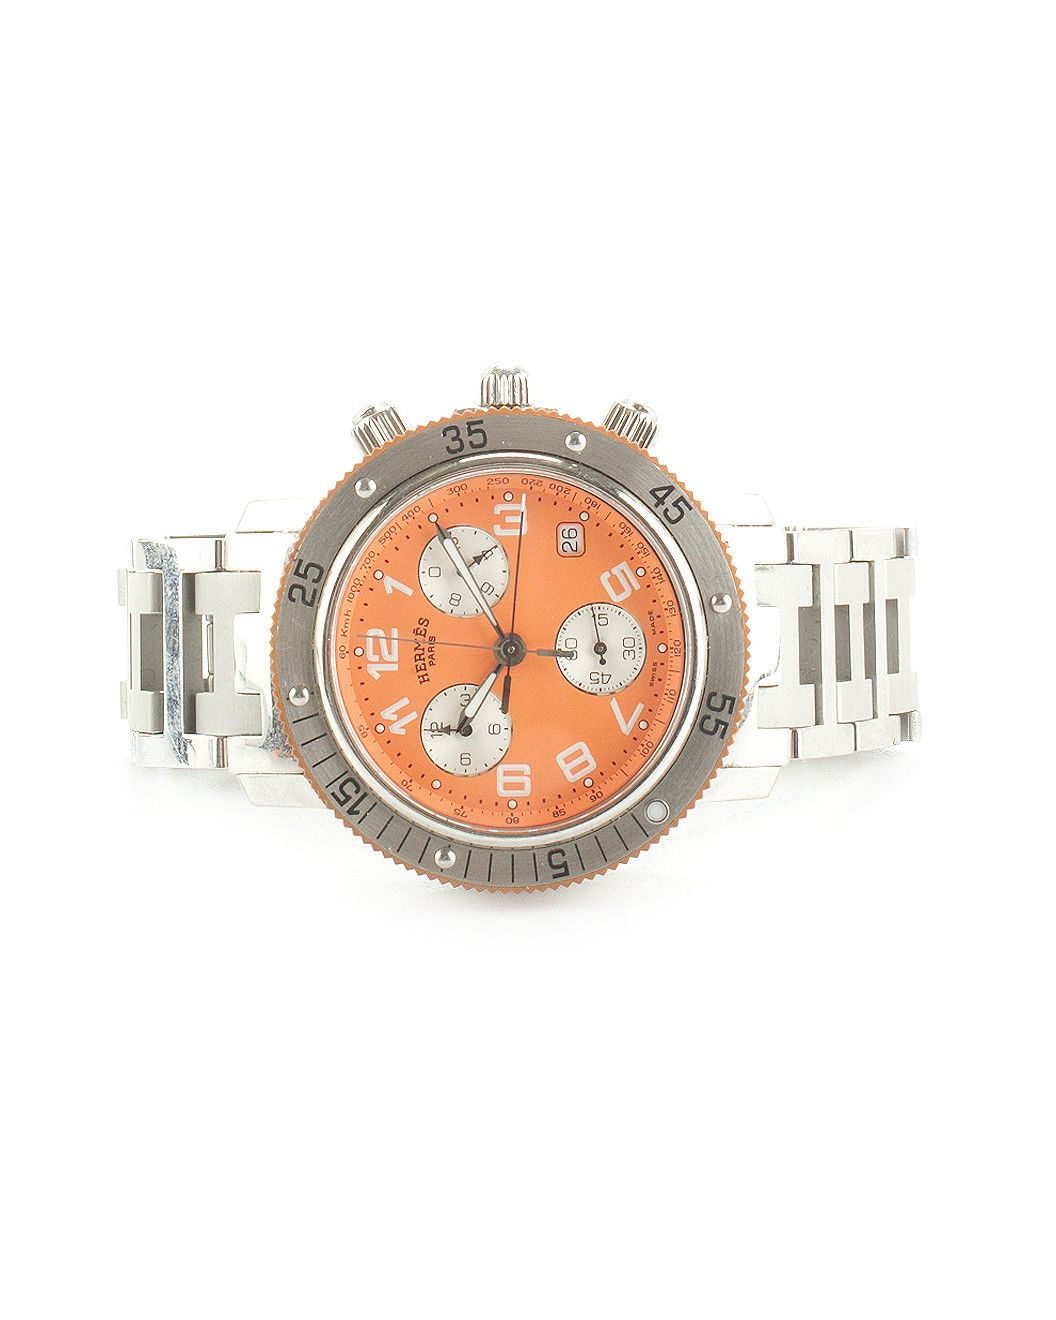 Spotted this Hermes Chronograph Diver CL Watch on Rue La La. Shop (quickly!).